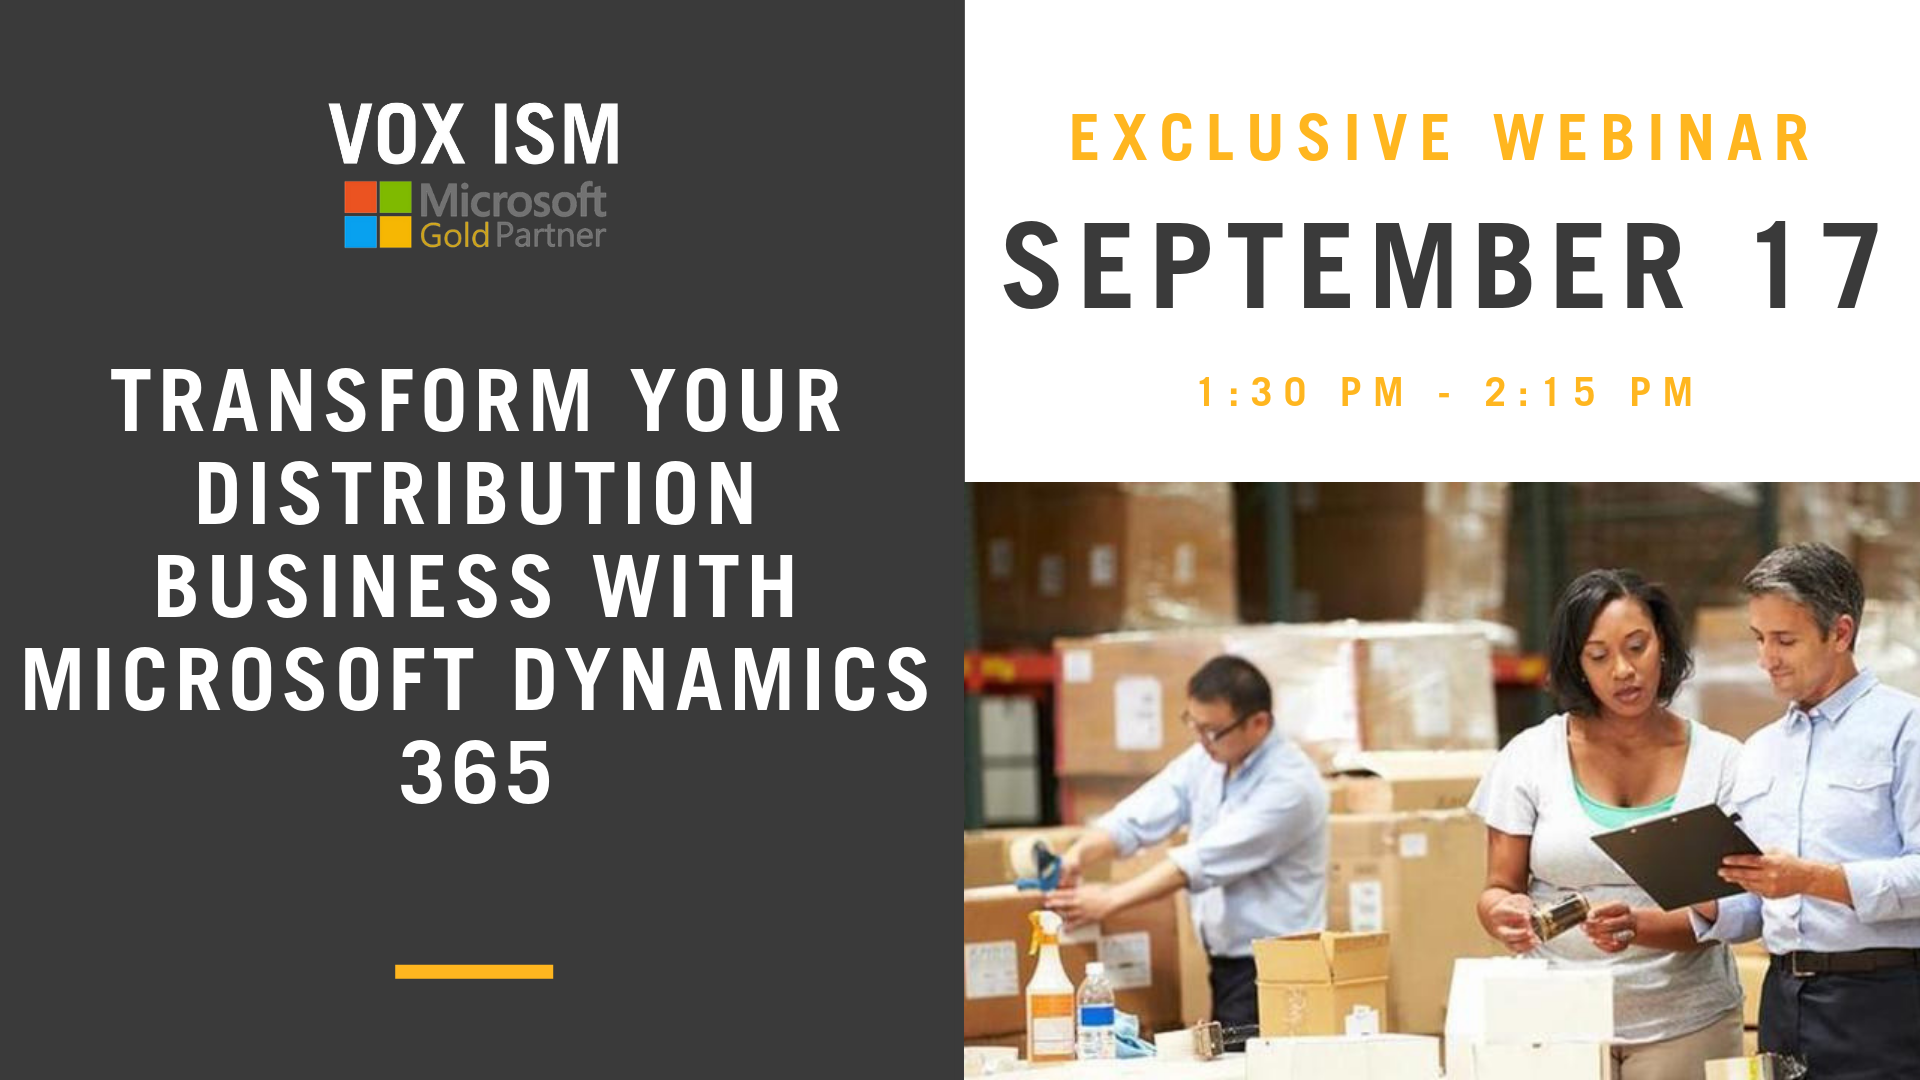 Transform your distribution business with Microsoft Dynamics 365 - September 17 - Webinar - VOX ISM